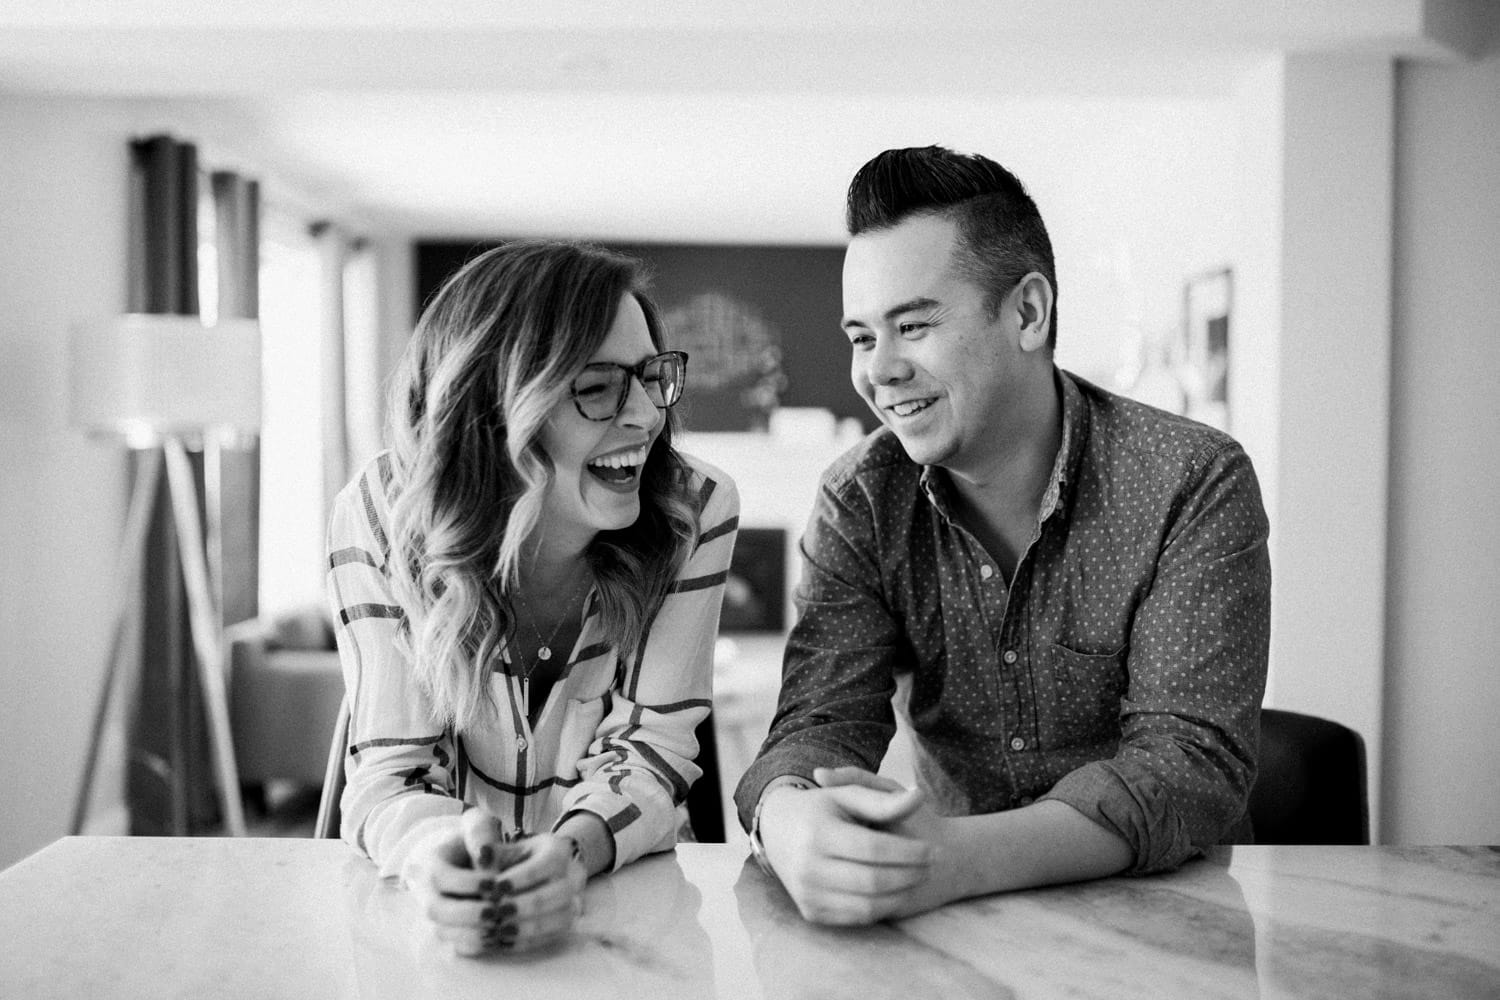 couple laugh together in kitchen - ottawa winter engagement photos